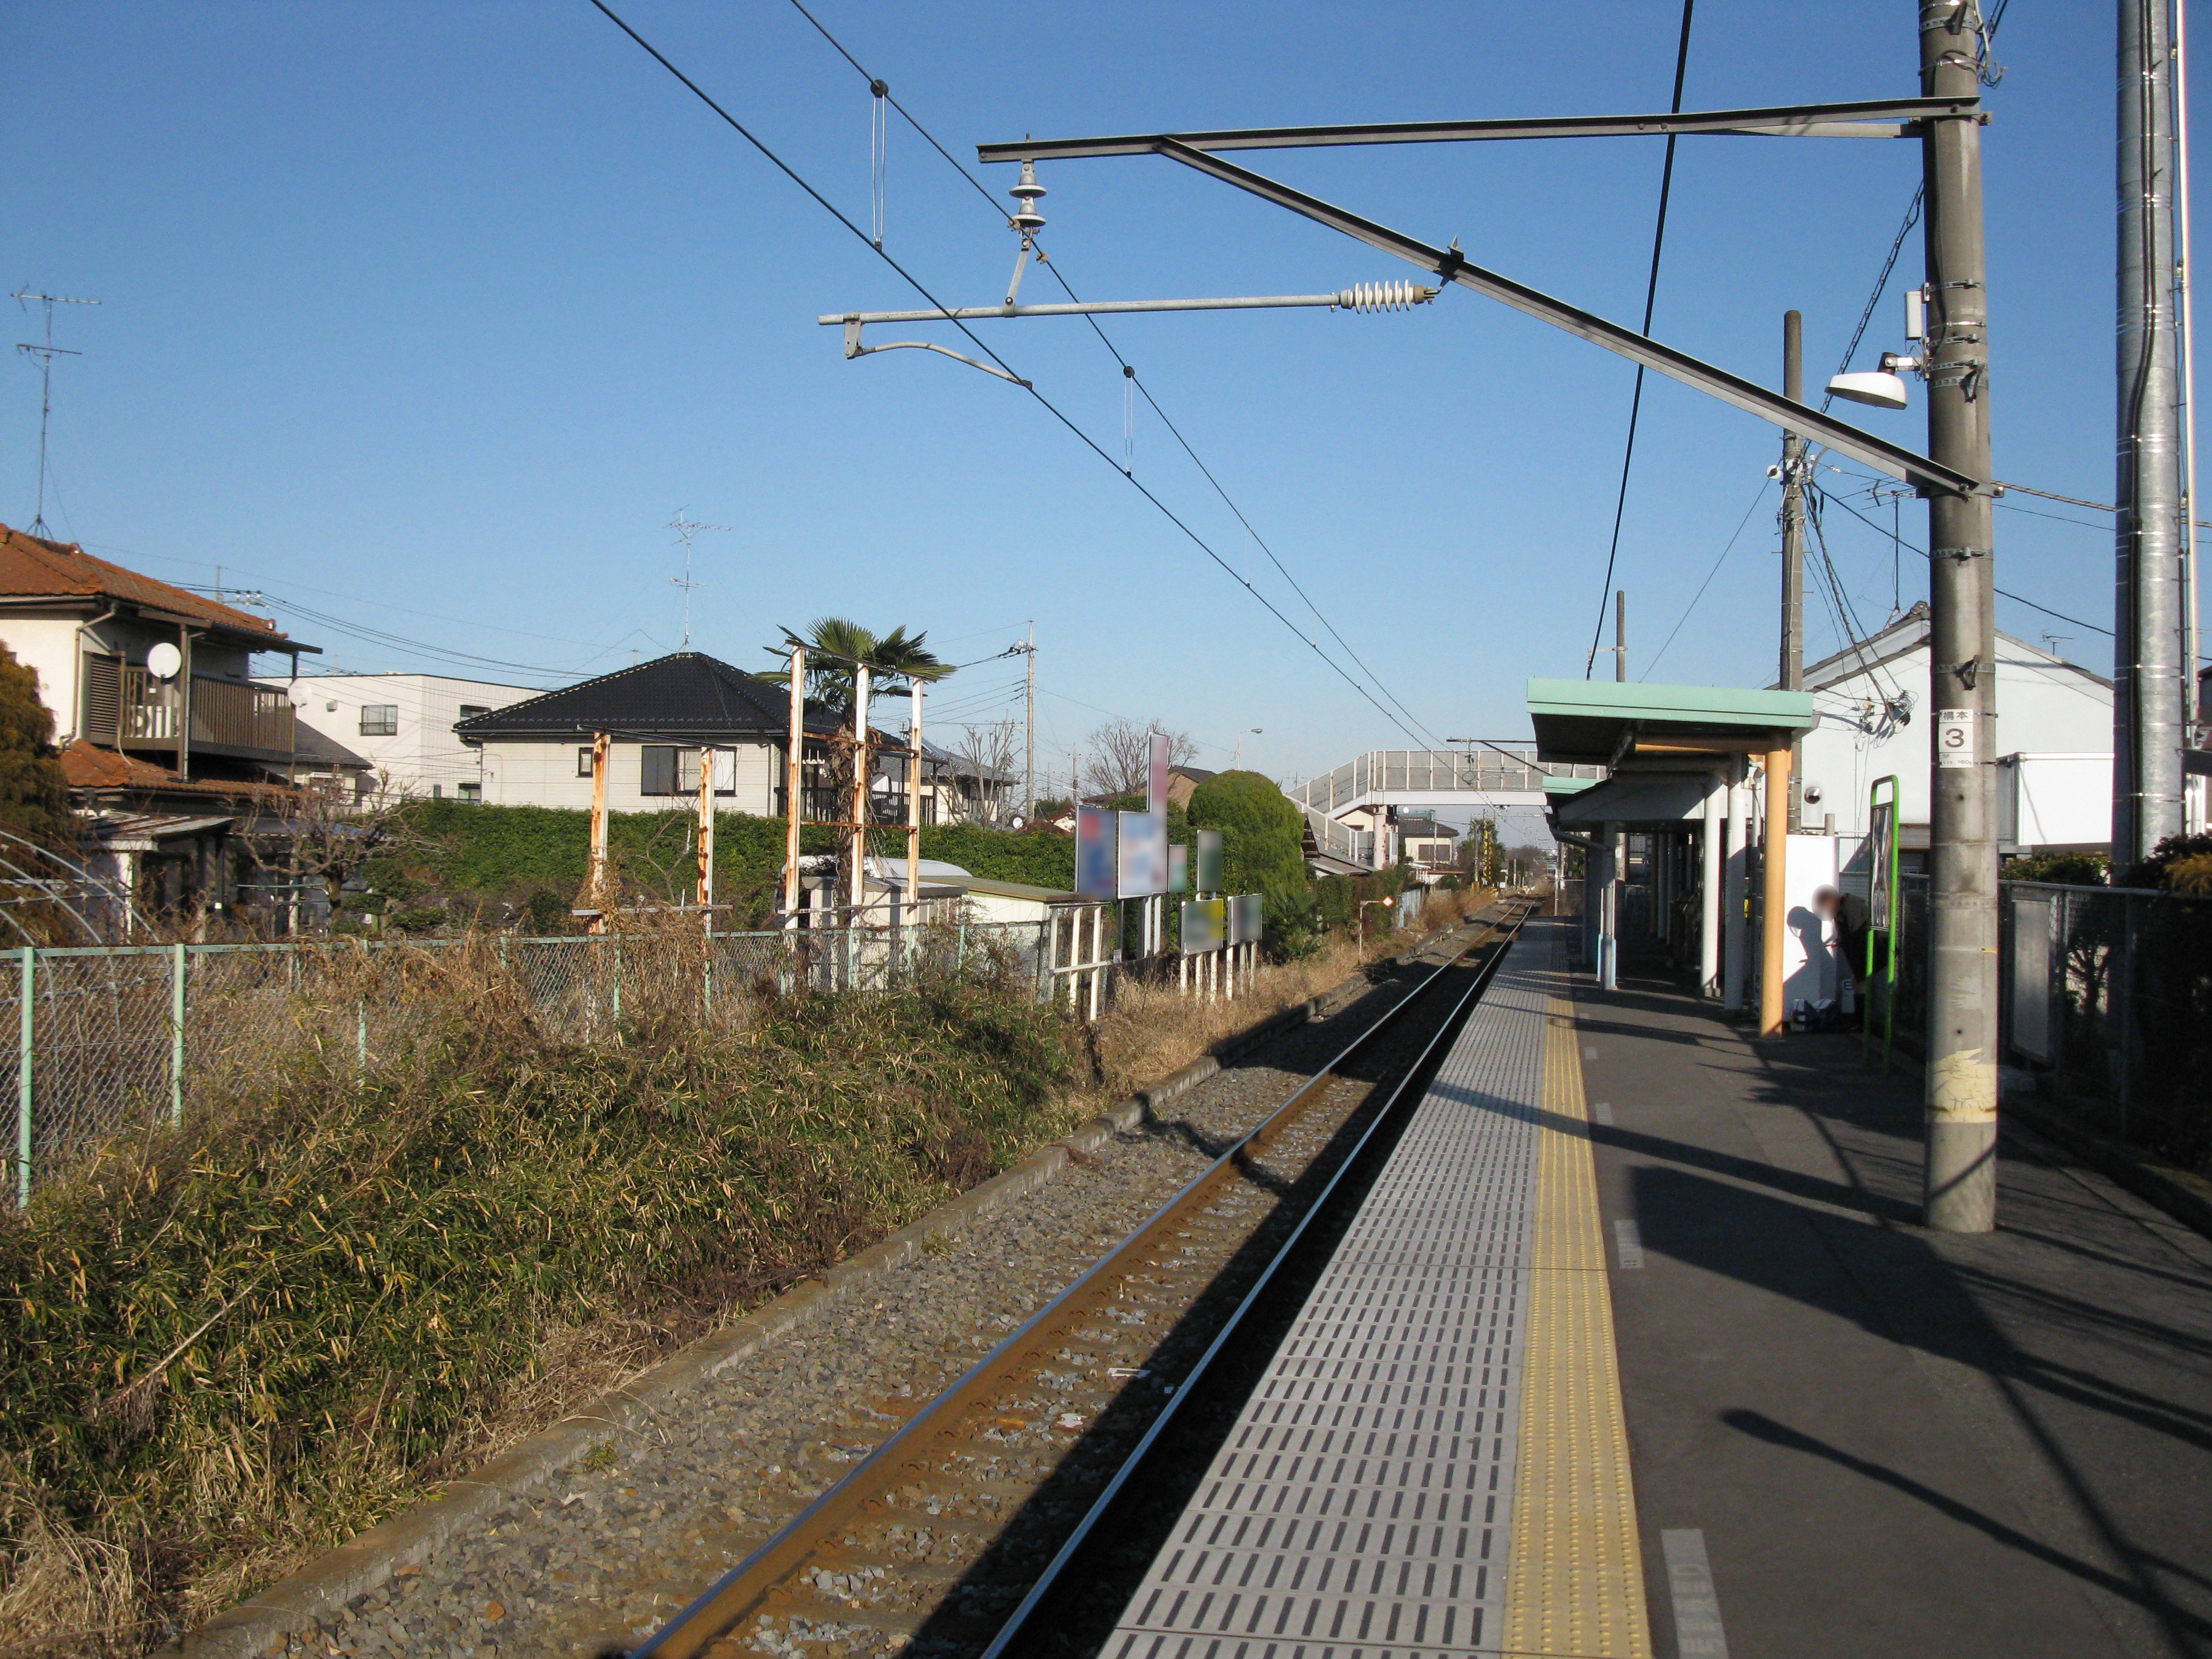 https://upload.wikimedia.org/wikipedia/commons/3/38/JREast-Kawagoe-line-Kasahata-station-platform.jpg